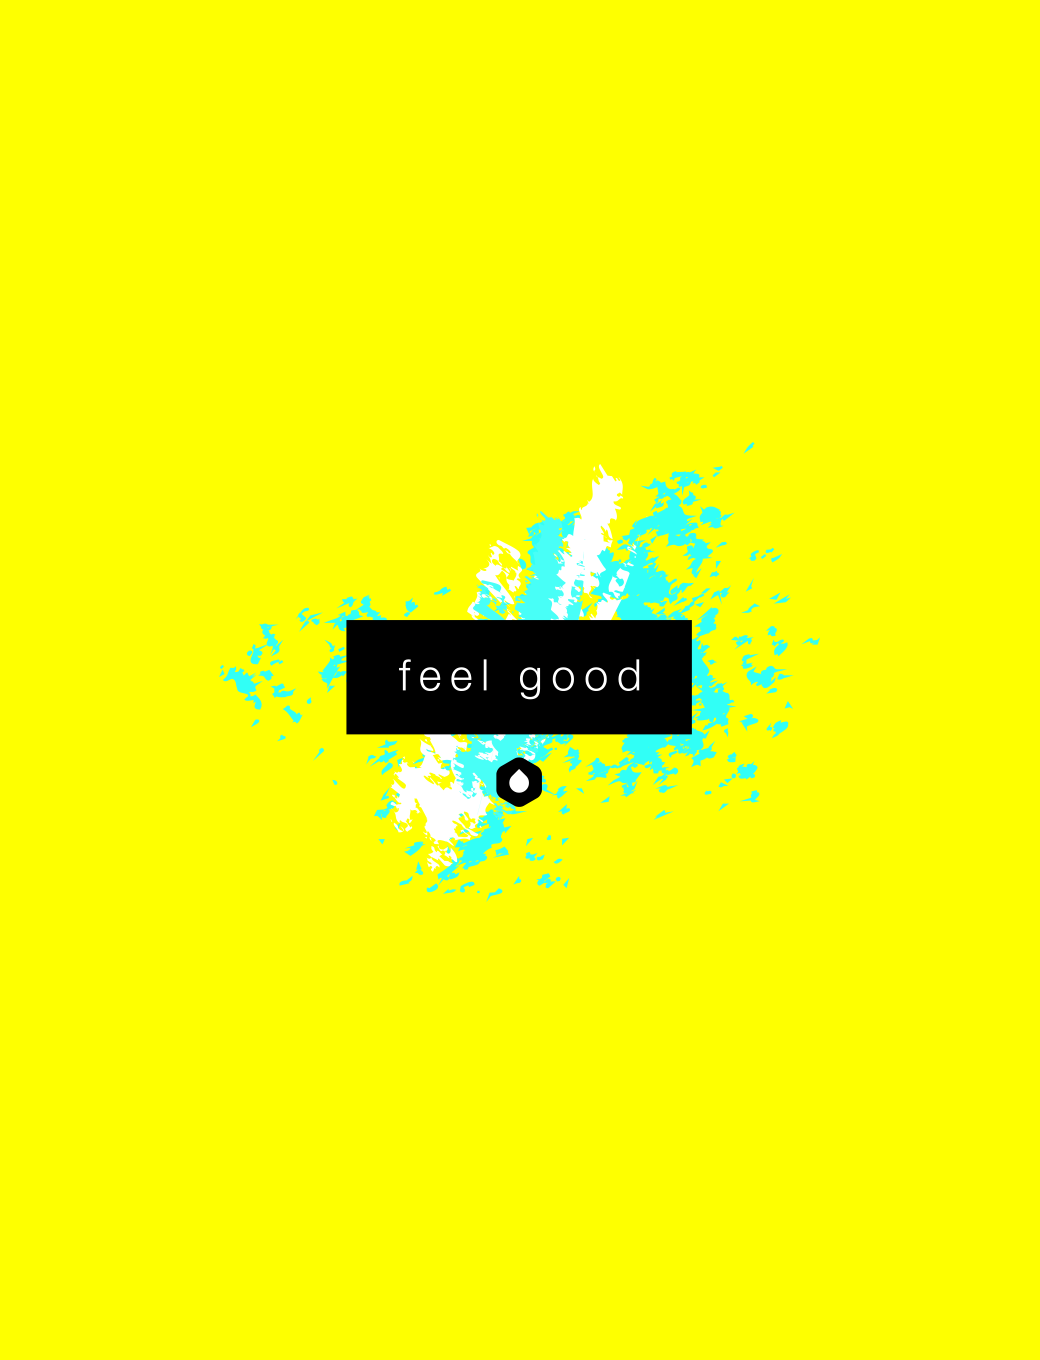 Wallpaper-FeelGood-iPhone4